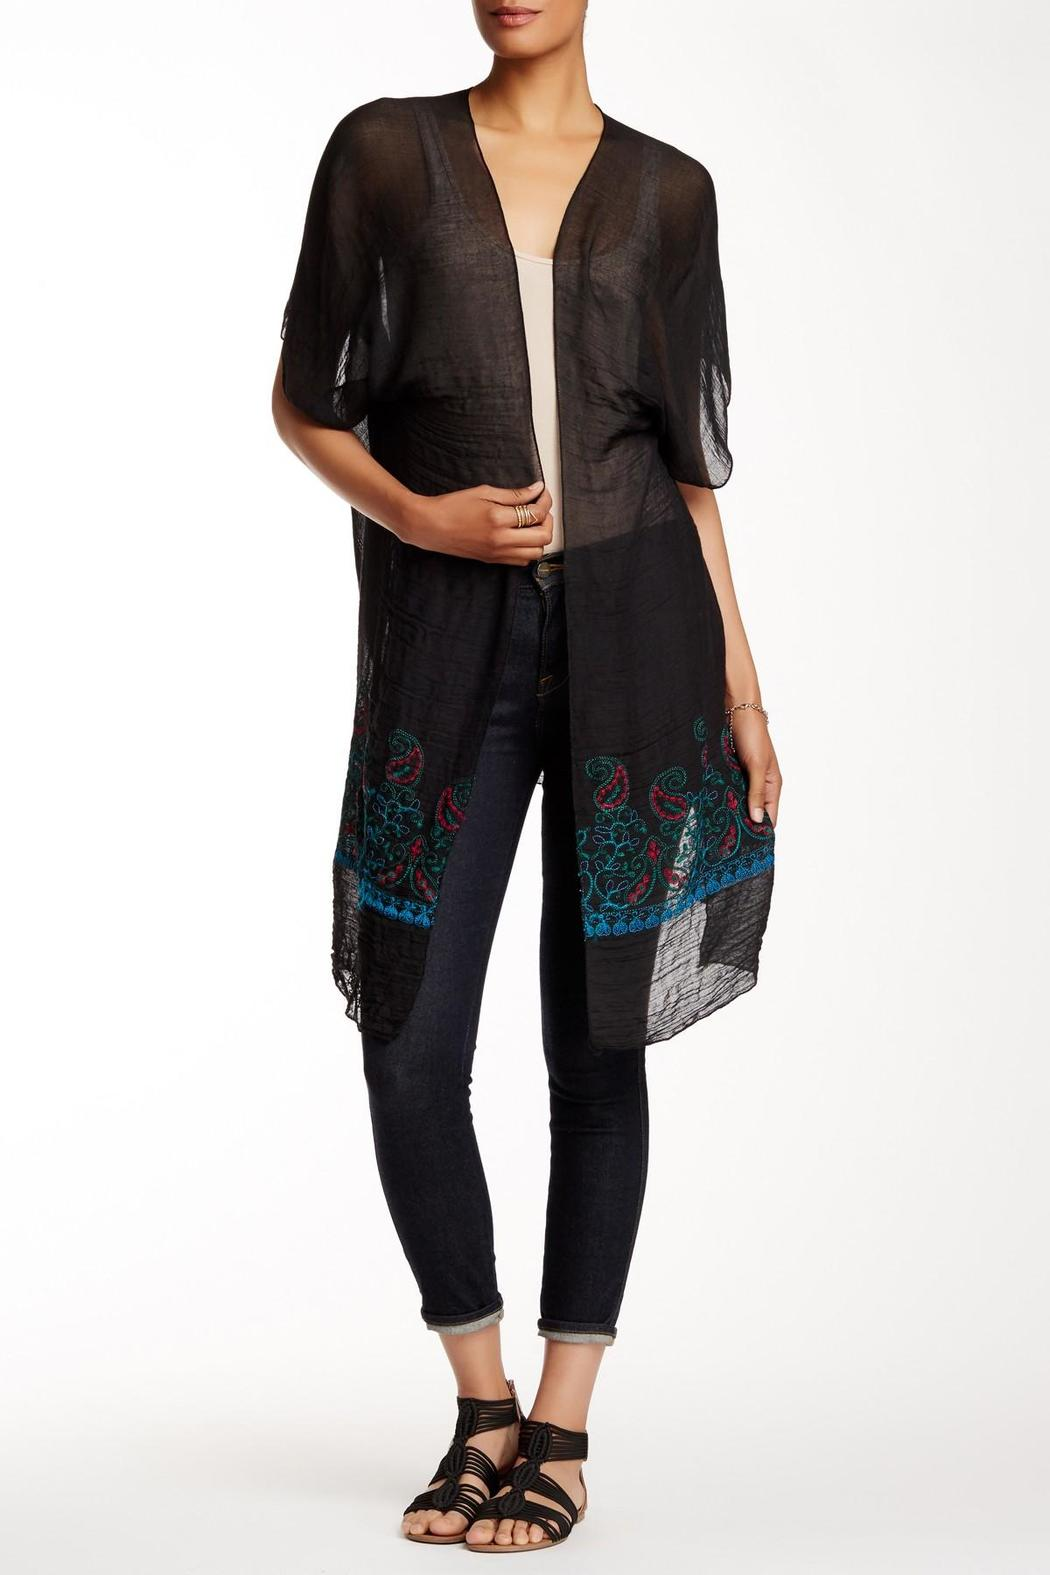 Rikka Sheer Black Long Cardigan - Main Image